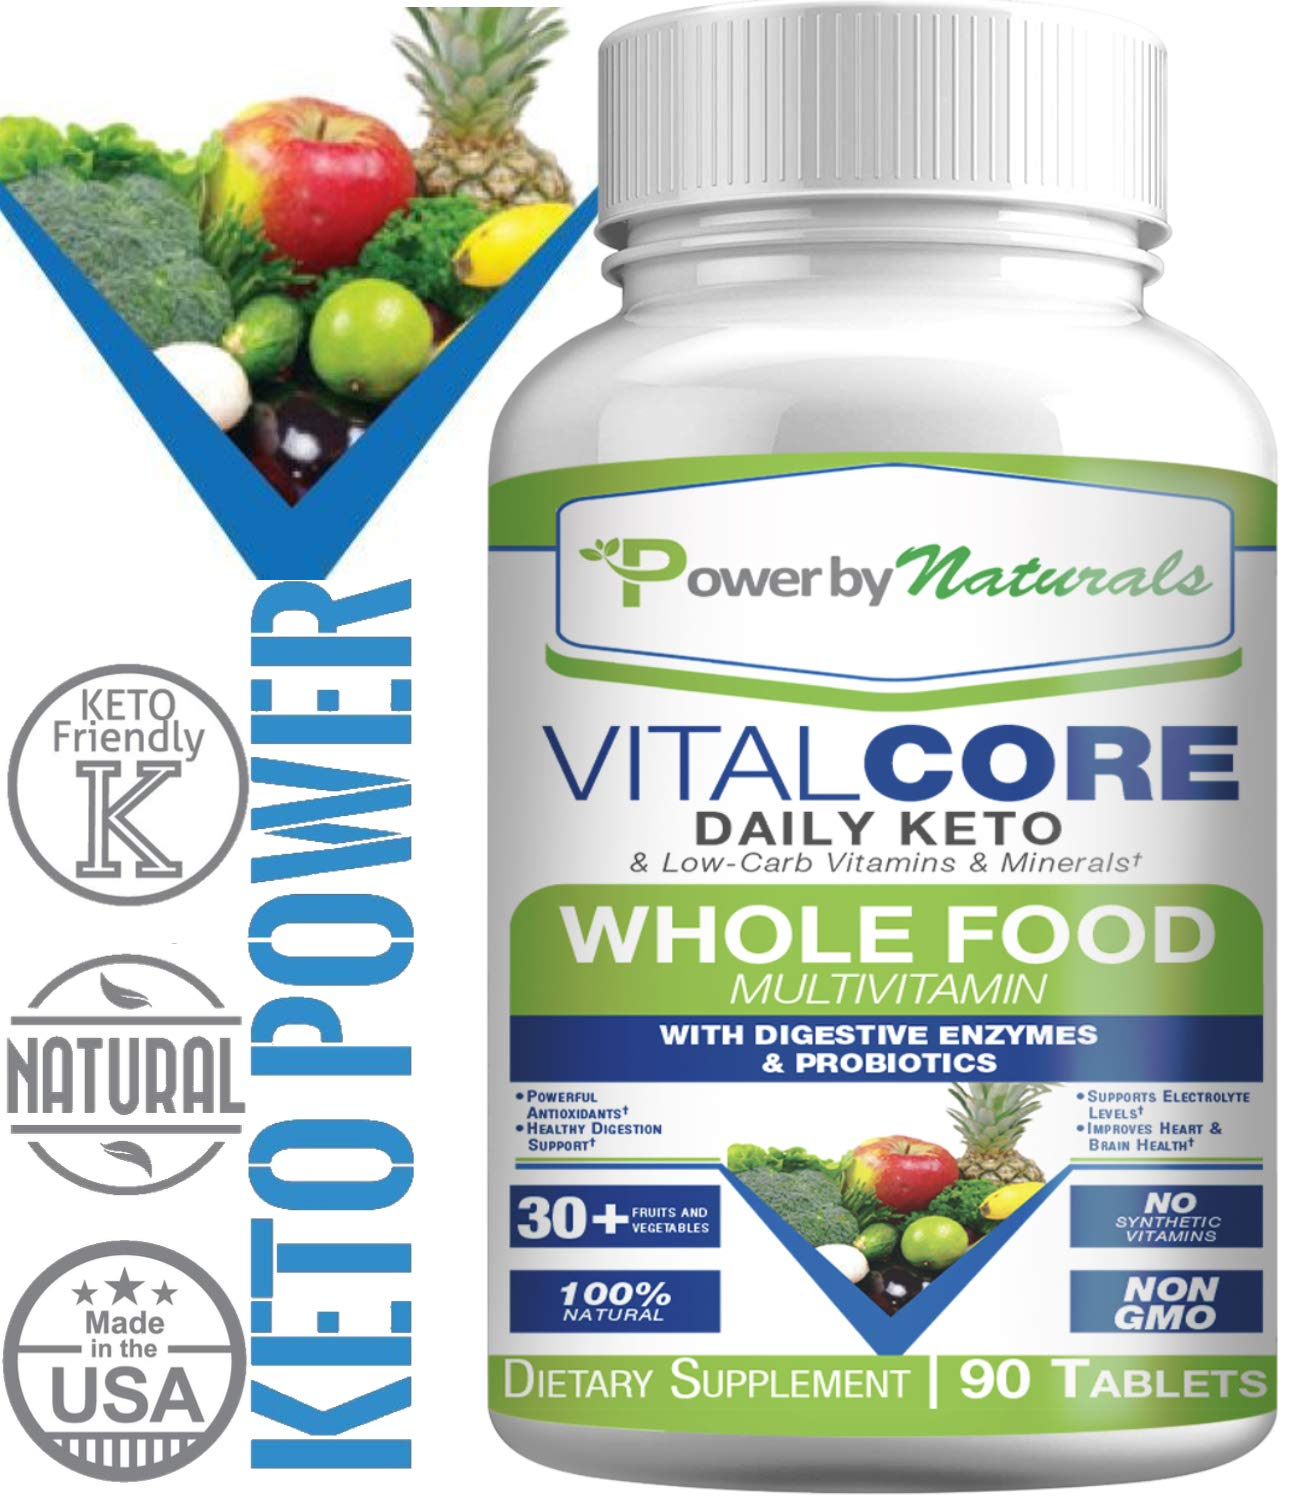 PbyN - Keto Vital Core - Daily WholeFood Keto Multivitamin with Minerals, Electrolytes, Digestive Enzyme and Probiotics, Multi Supplement for Low-Carb, Atkin, Paleo, Ketogenic Weight Loss Diets 90 ct by Power By Naturals